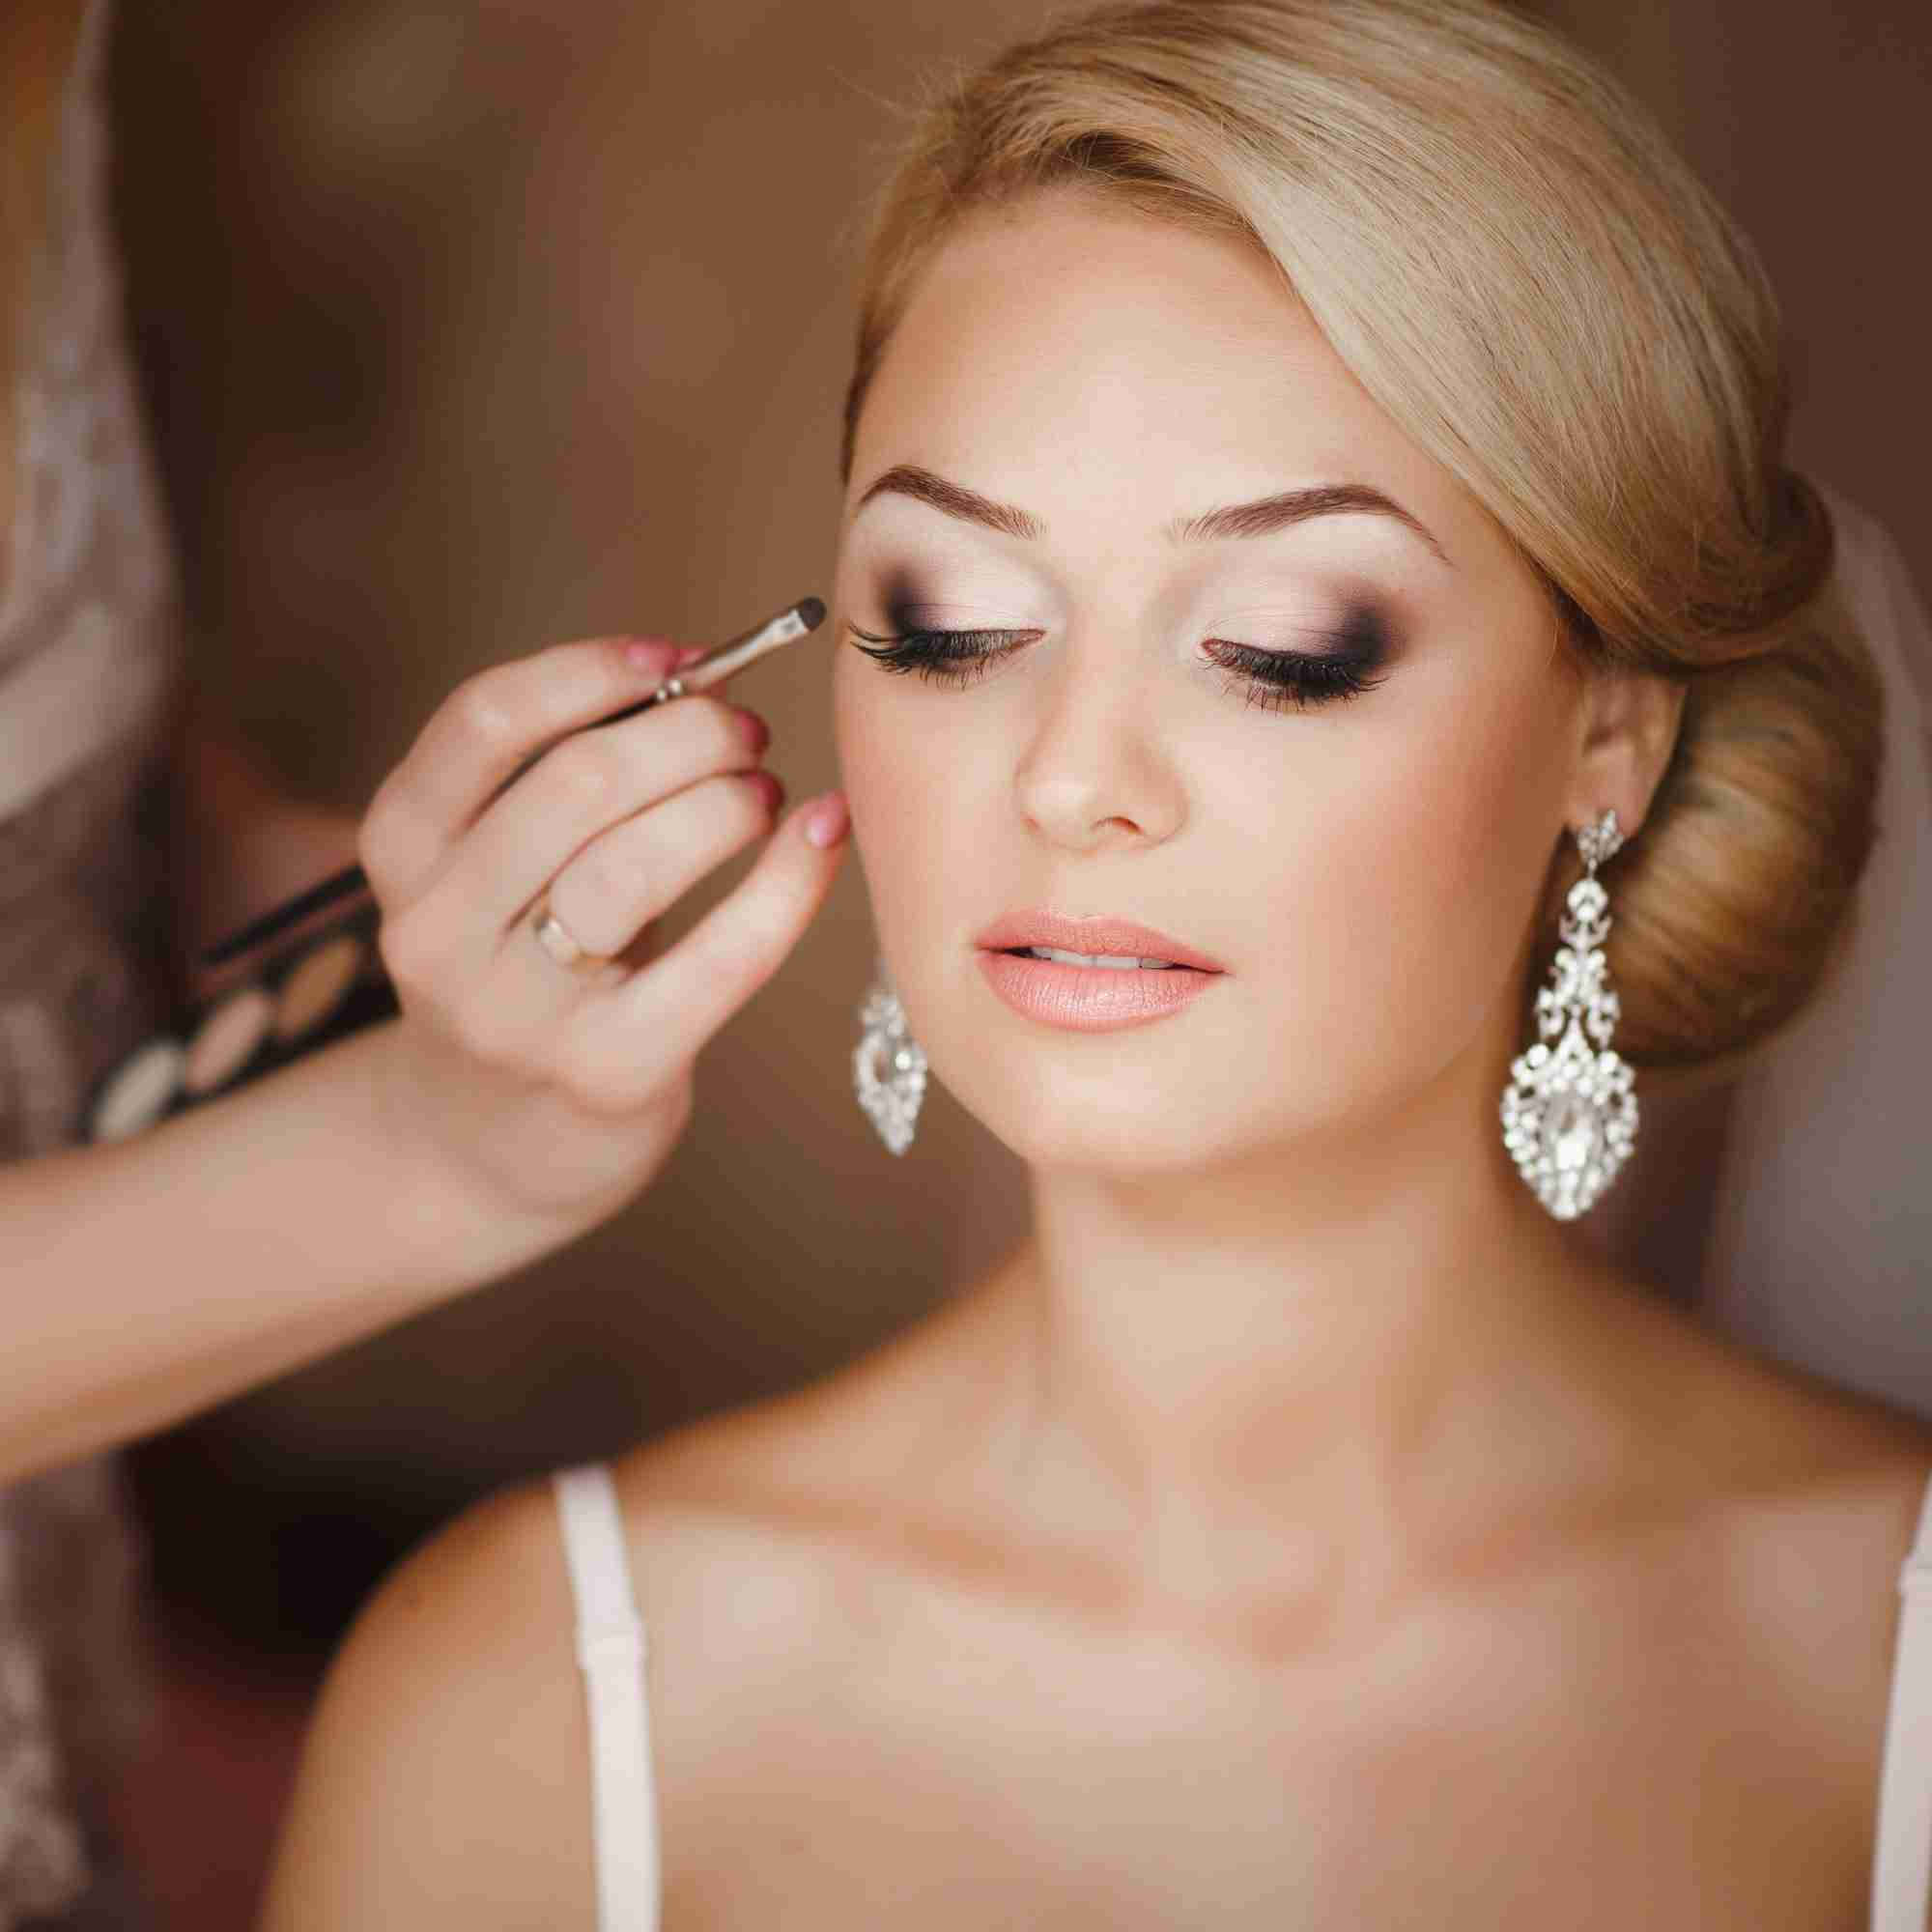 Wedding Makeup: Bridal Makeup Services- For Perfect Looks On Your Wedding Day